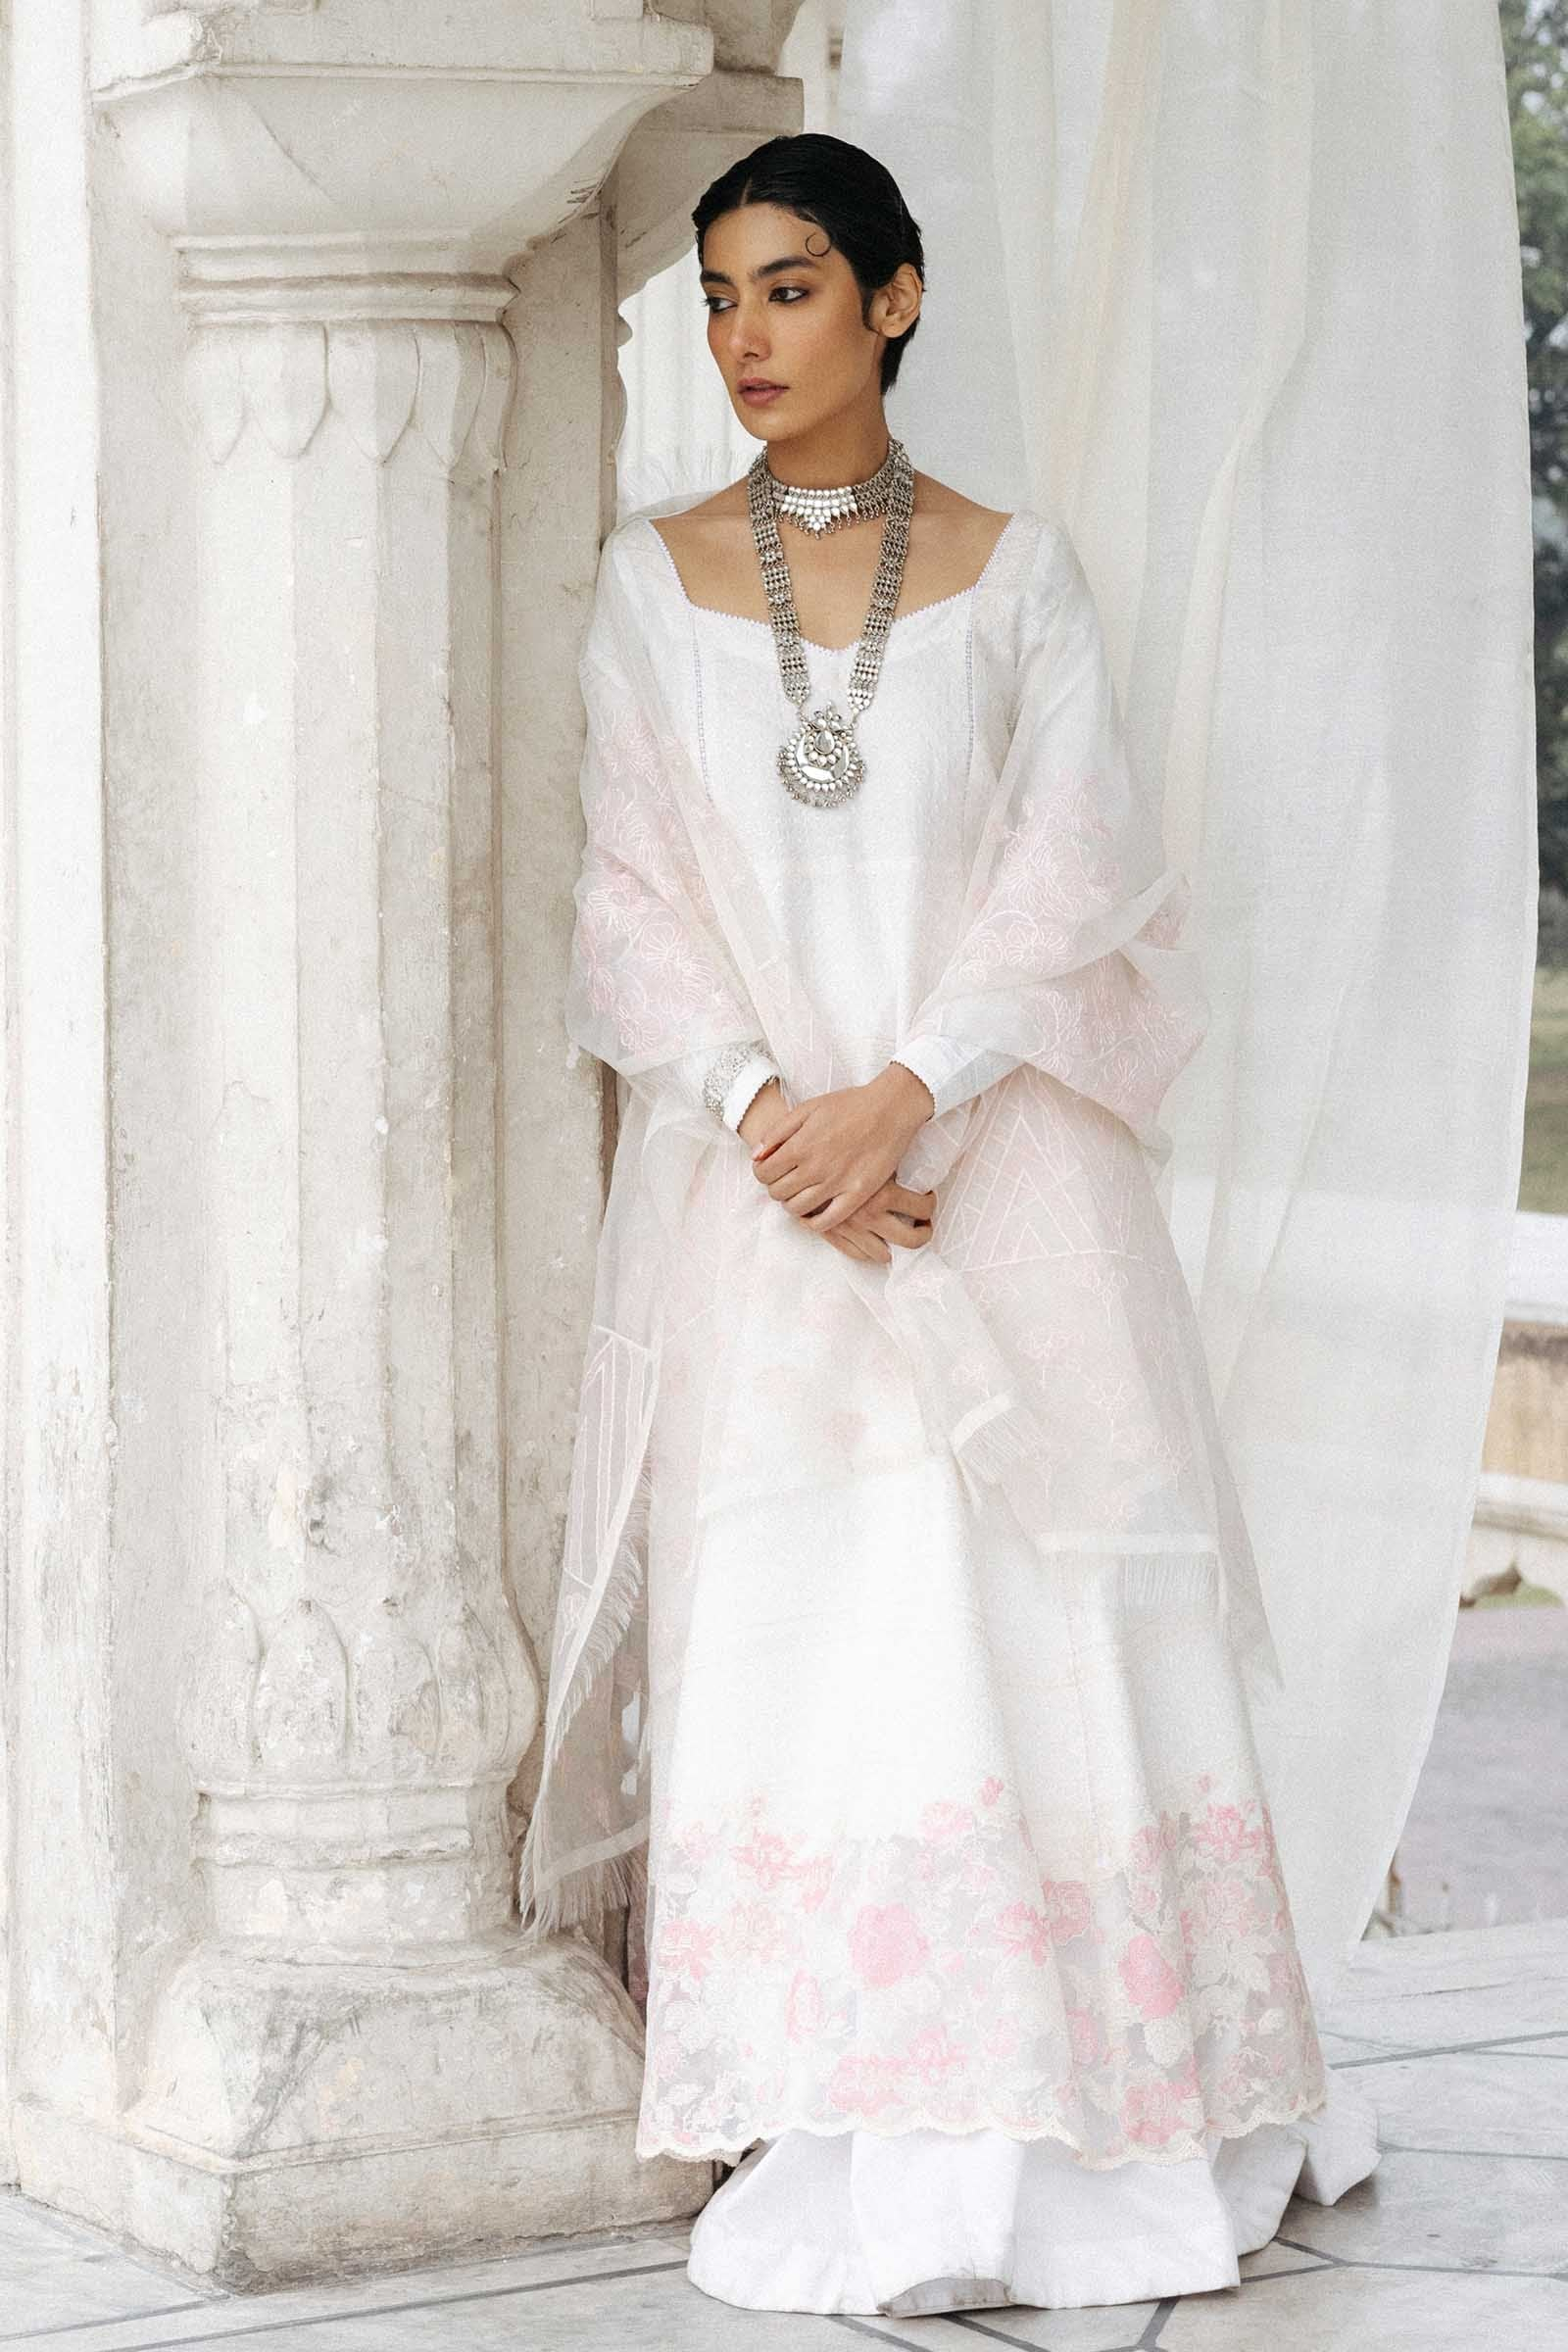 Zara sharjahan 2020 wedding dresses UK online